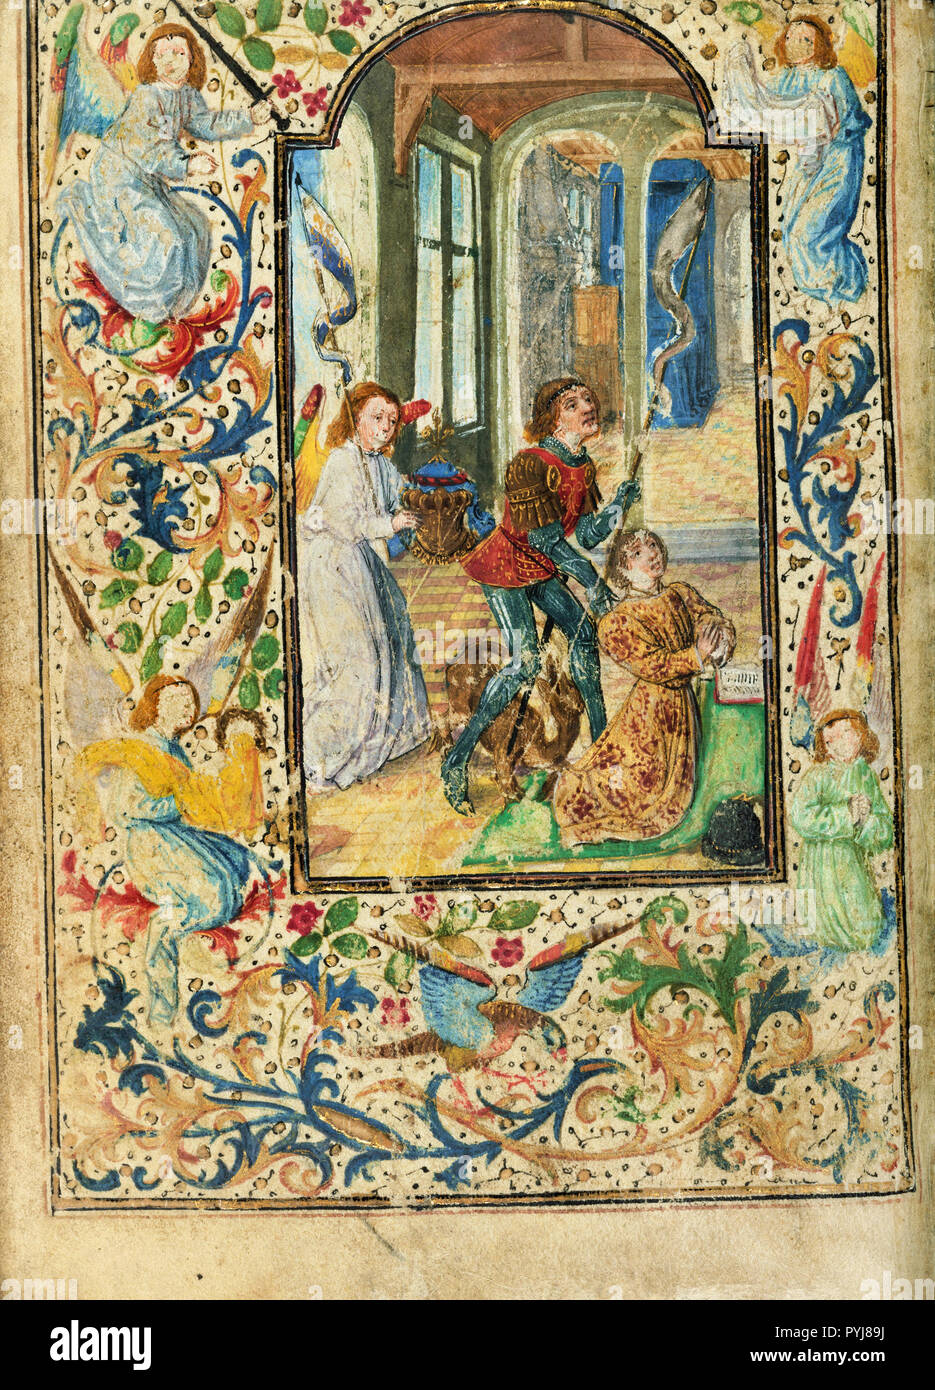 Lieven van Lathem, Charles the Bold Presented by Saint George, Circa 1471 Tempera colors, gold leaf, gold, silver, ink on parchment, The J. Paul Getty Museum, Los Angeles, USA. Stock Photo